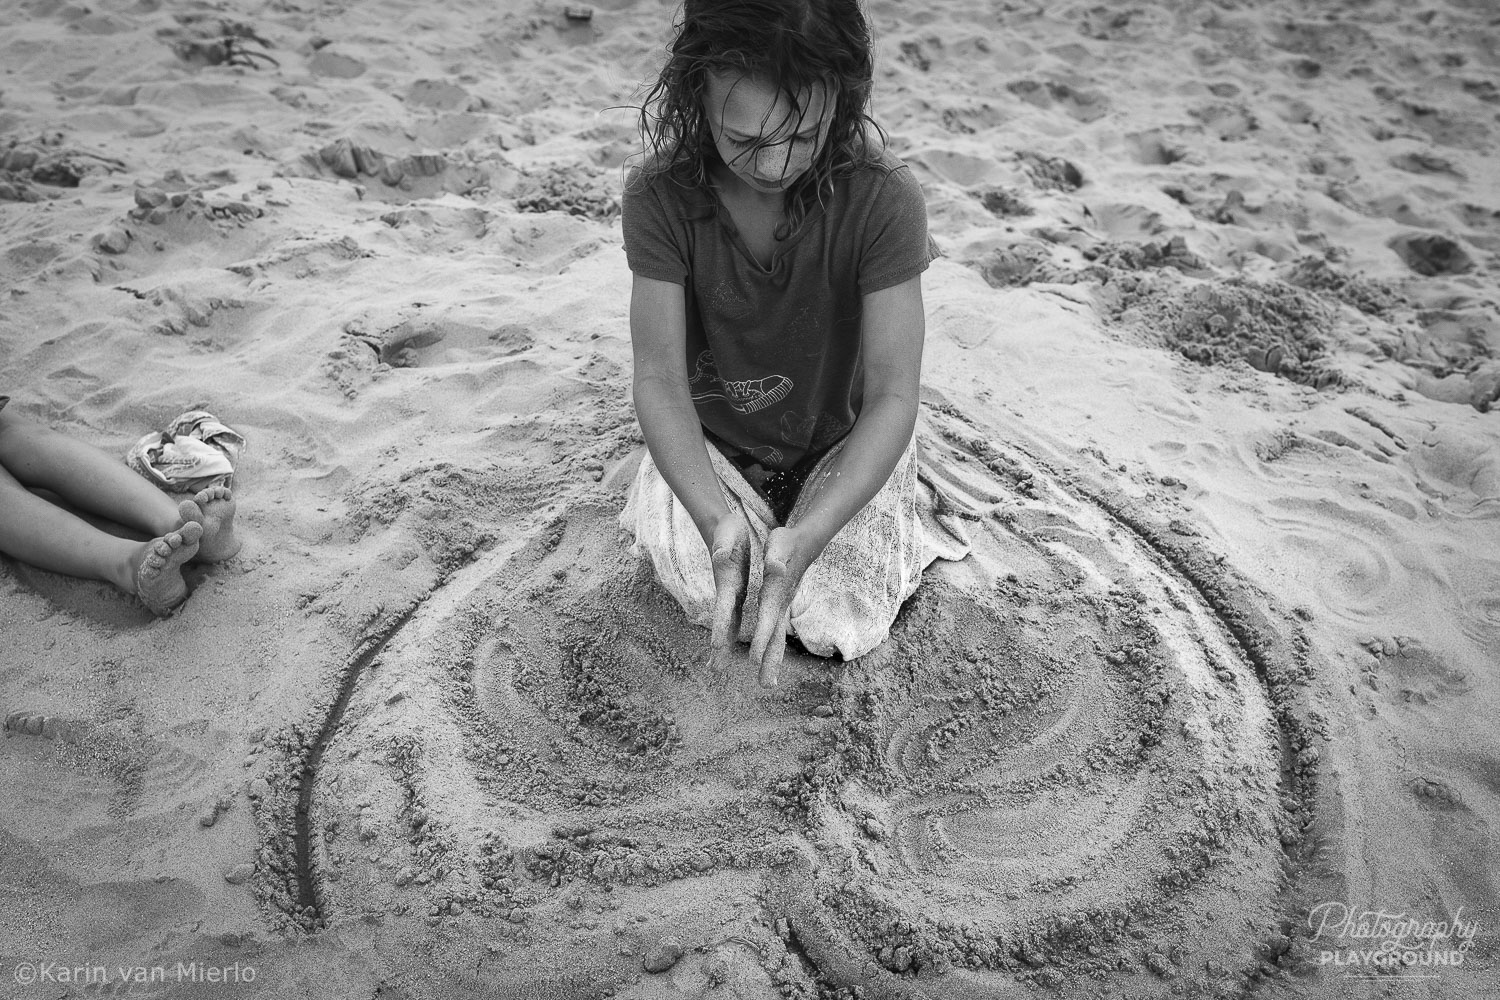 candid photography tips, people photography, candid pics | Photo: Girl on the beach, The Netherlands ©Karin van Mierlo, Photography Playground